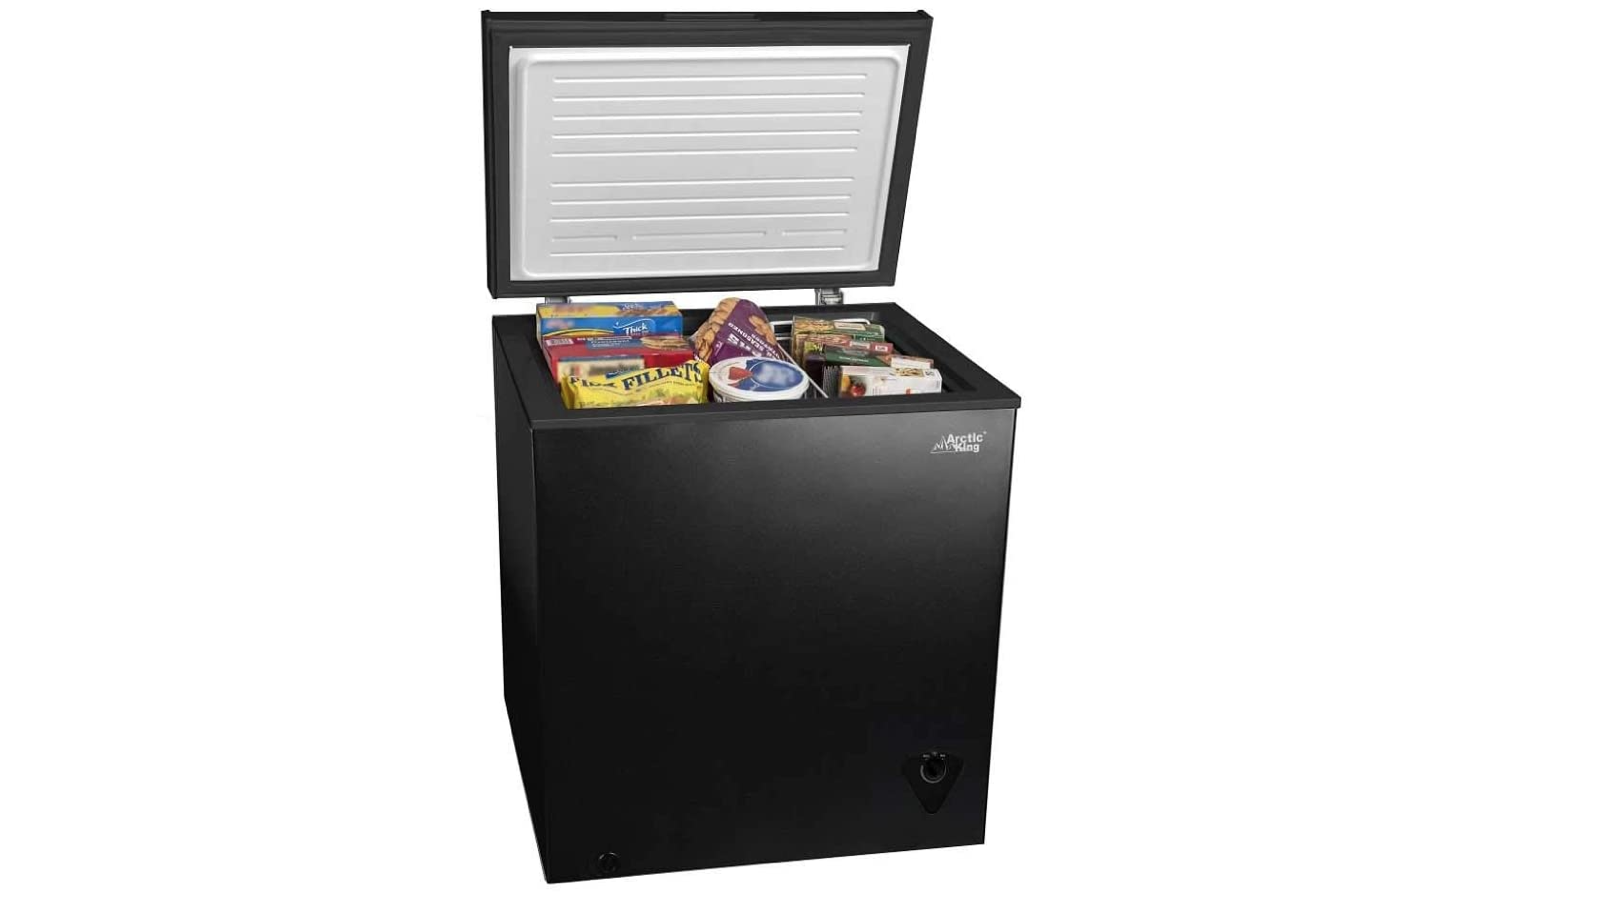 cubic black chest freezer open to show packaged food inside